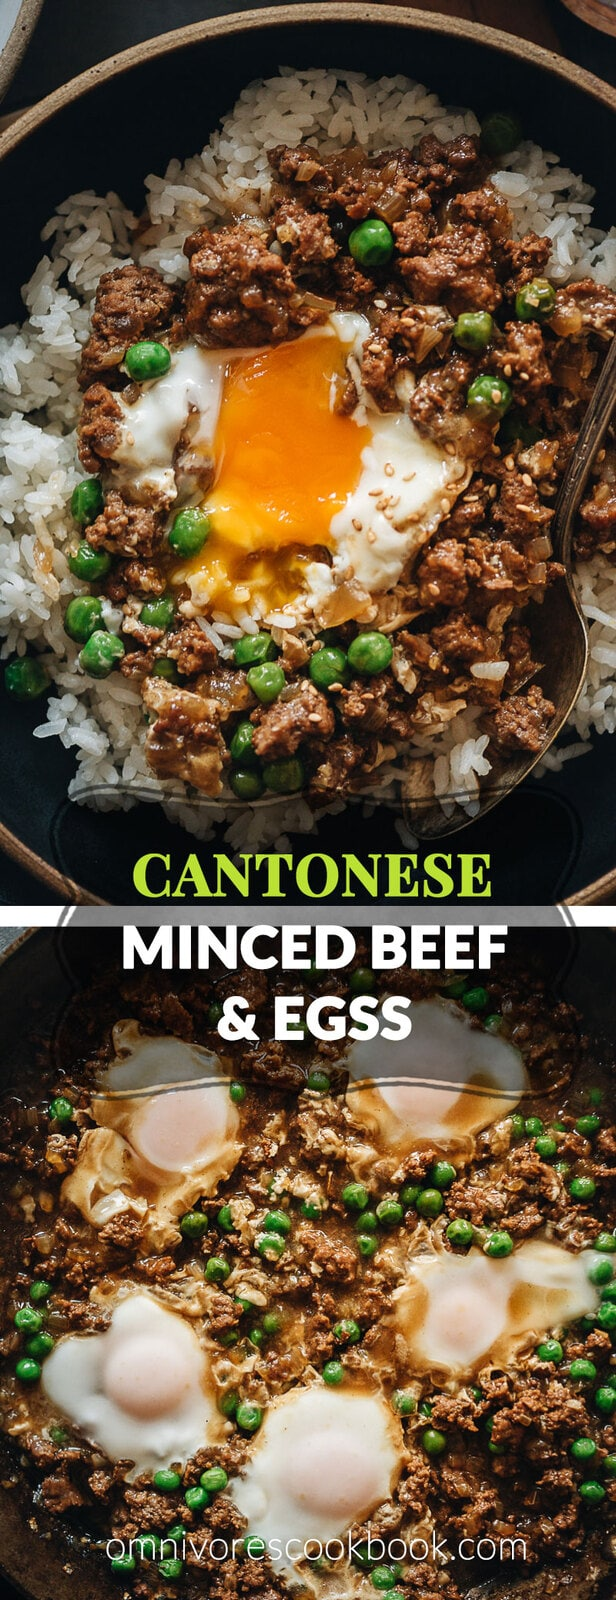 Cantonese Ground Beef Rice and Eggs | A super easy Cantonese minced beef bowl cooked with an oyster-sauce-based sauce, onion, green peas, and runny eggs. Top it on steamed rice or noodles to make a hearty and healthy meal. It's also perfect to make ahead and use as meal-prep. {Gluten-Free Adaptable}